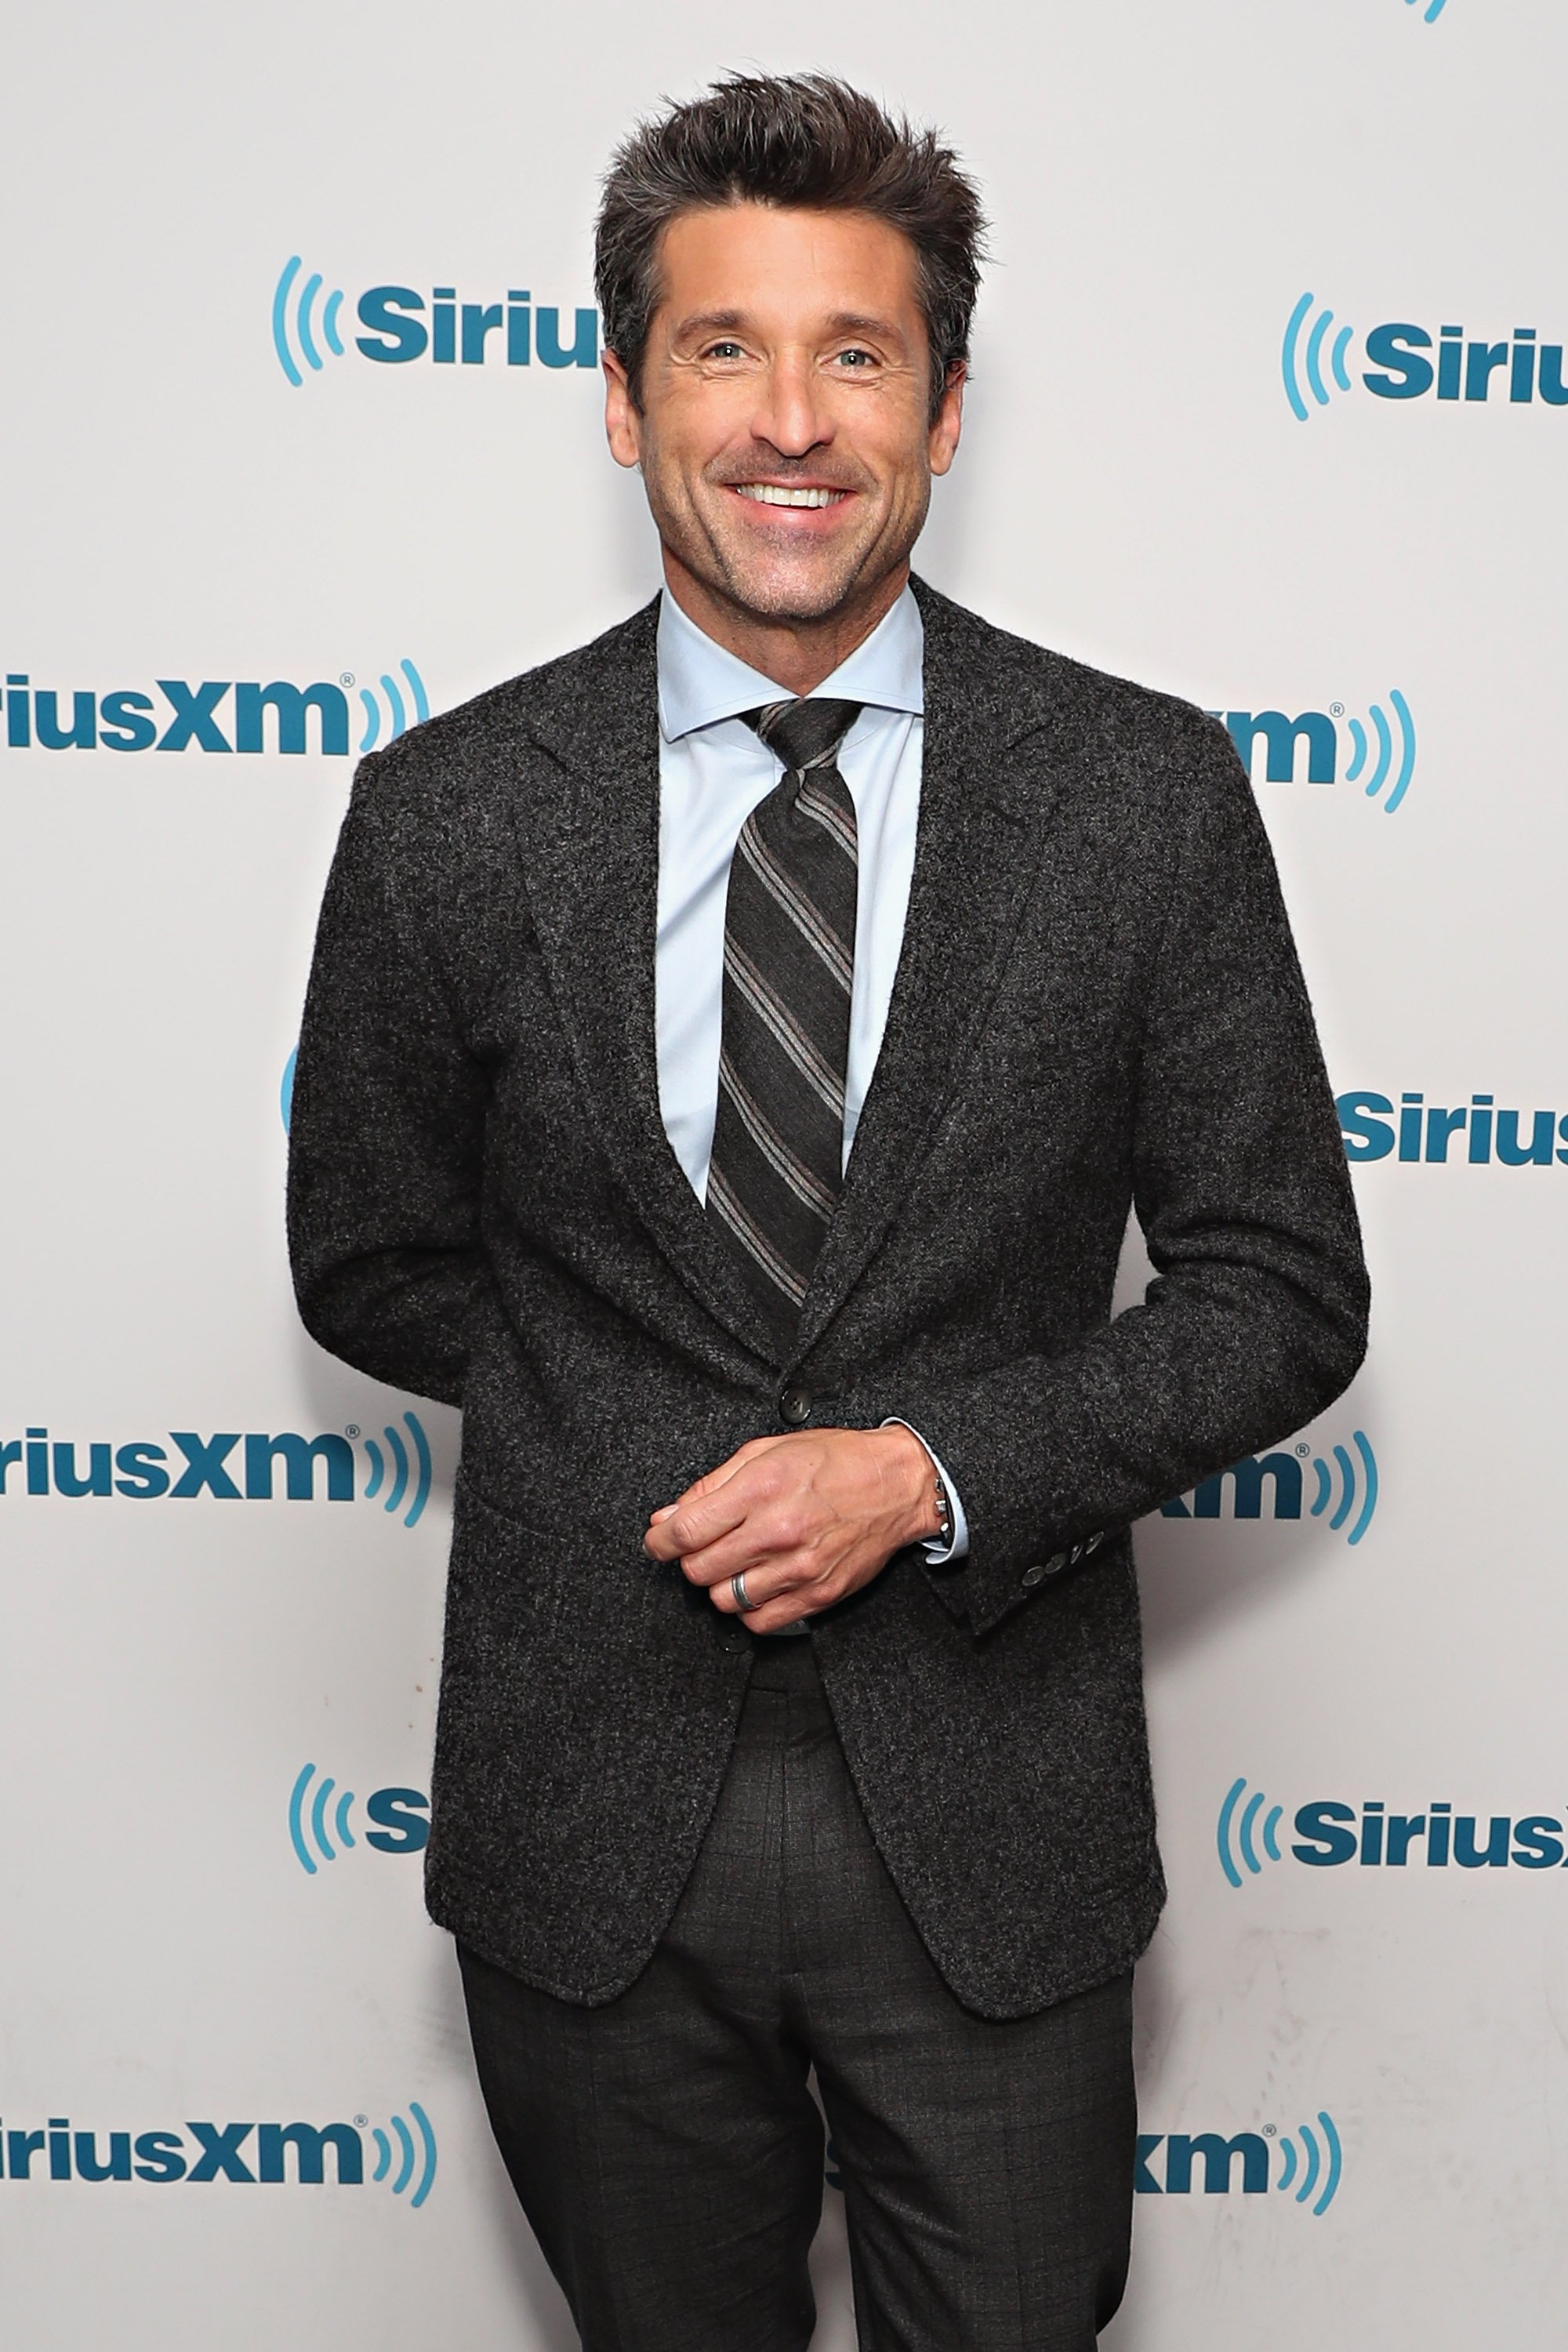 Patrick Dempsey pictured at SiriusXM Studio, 2016, New York City. | Photo: Getty Images